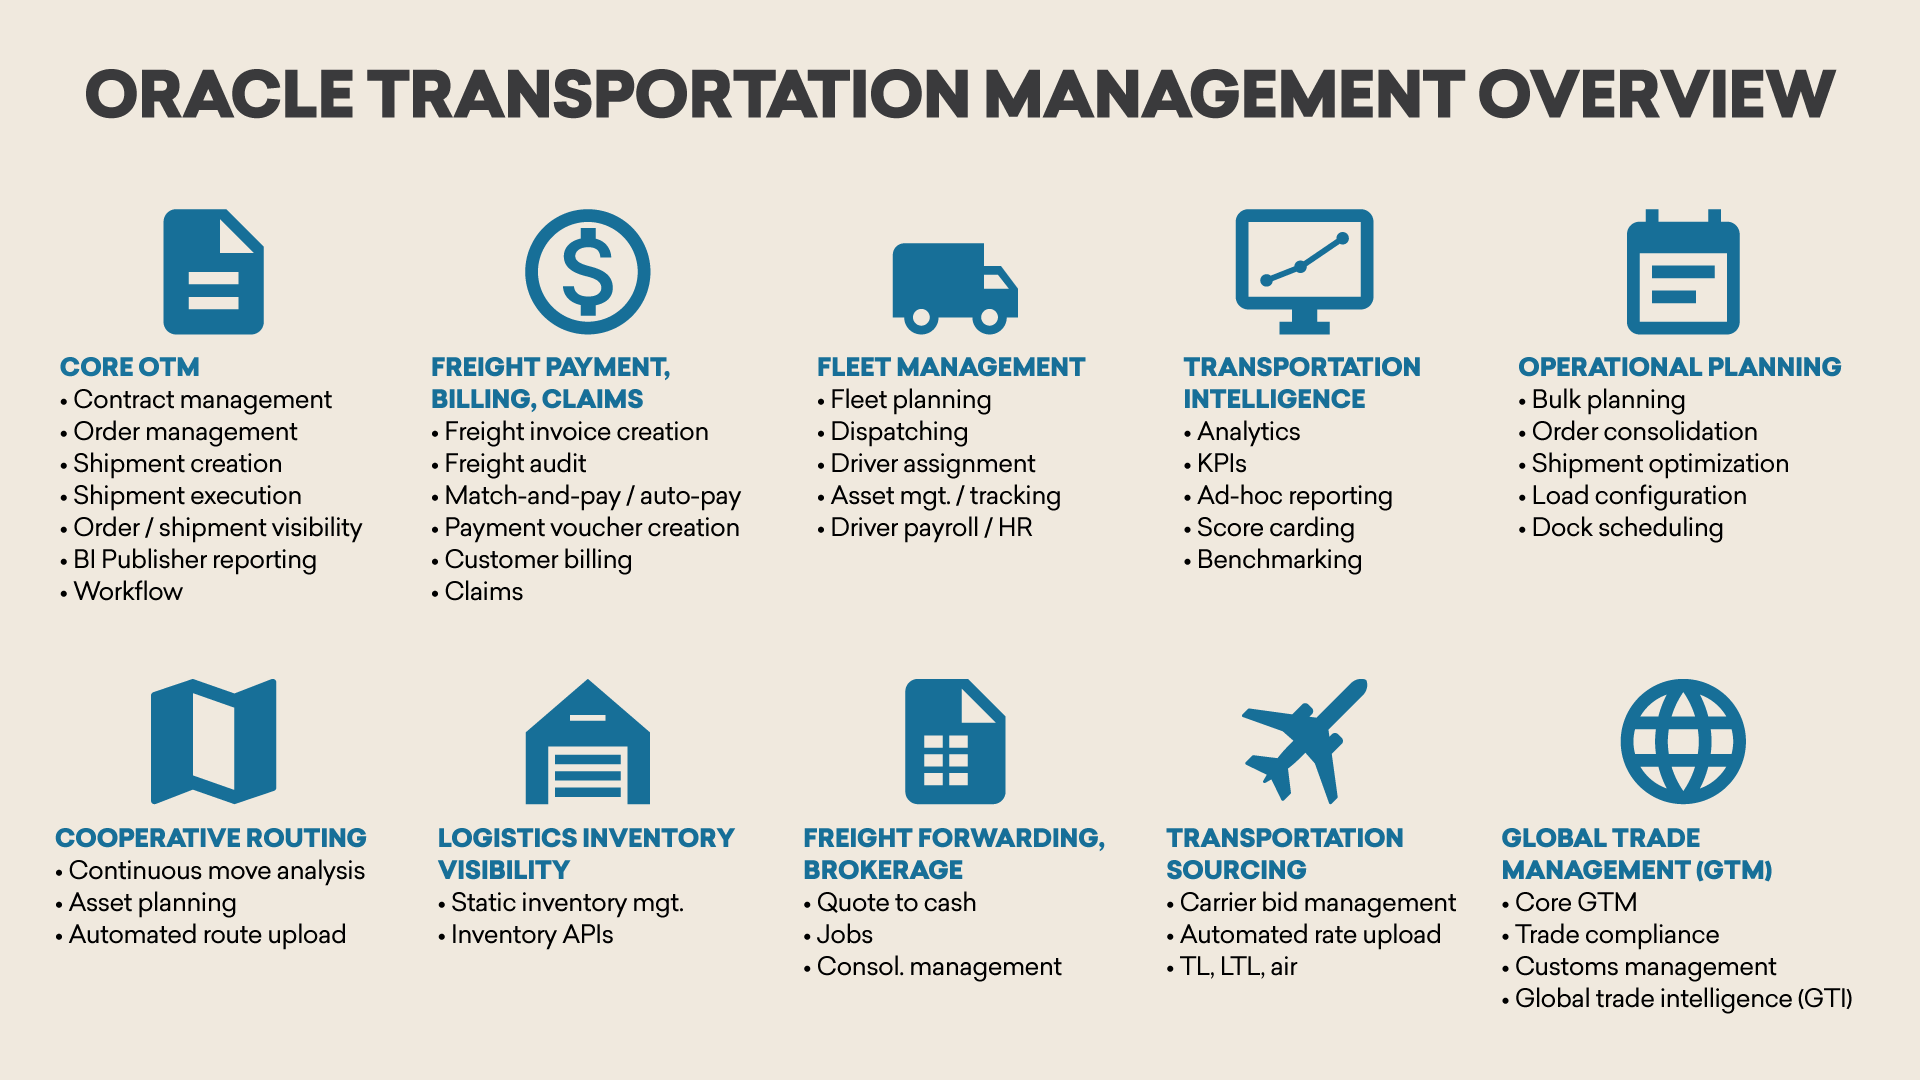 Oracle Transportation Management Overview